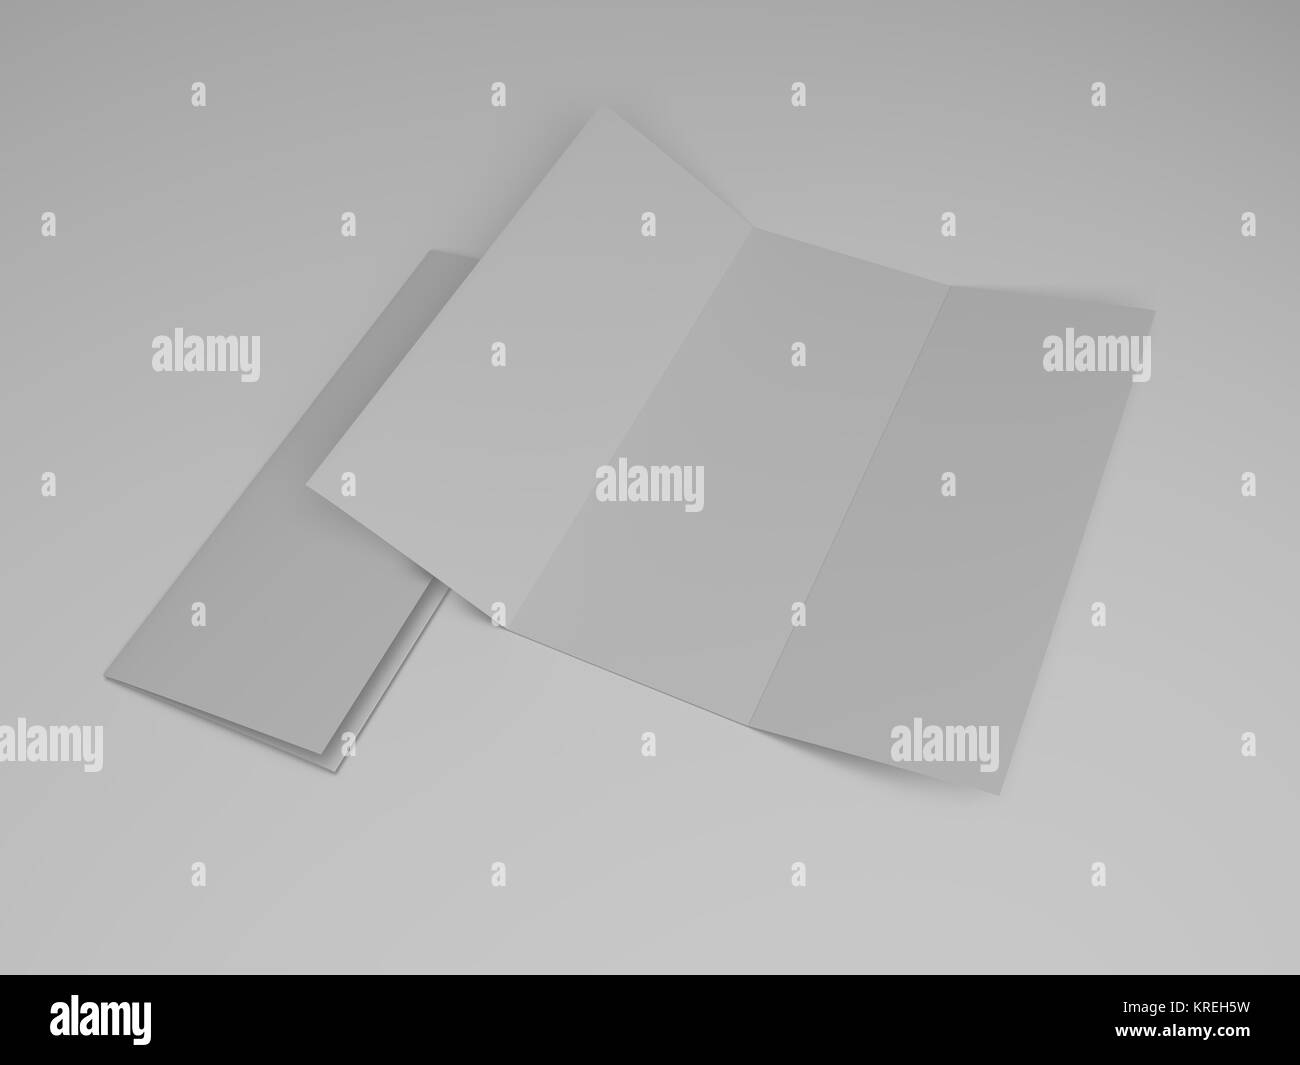 Blank Tri Fold Brochure Design Template 3d Rendering Stock Photo